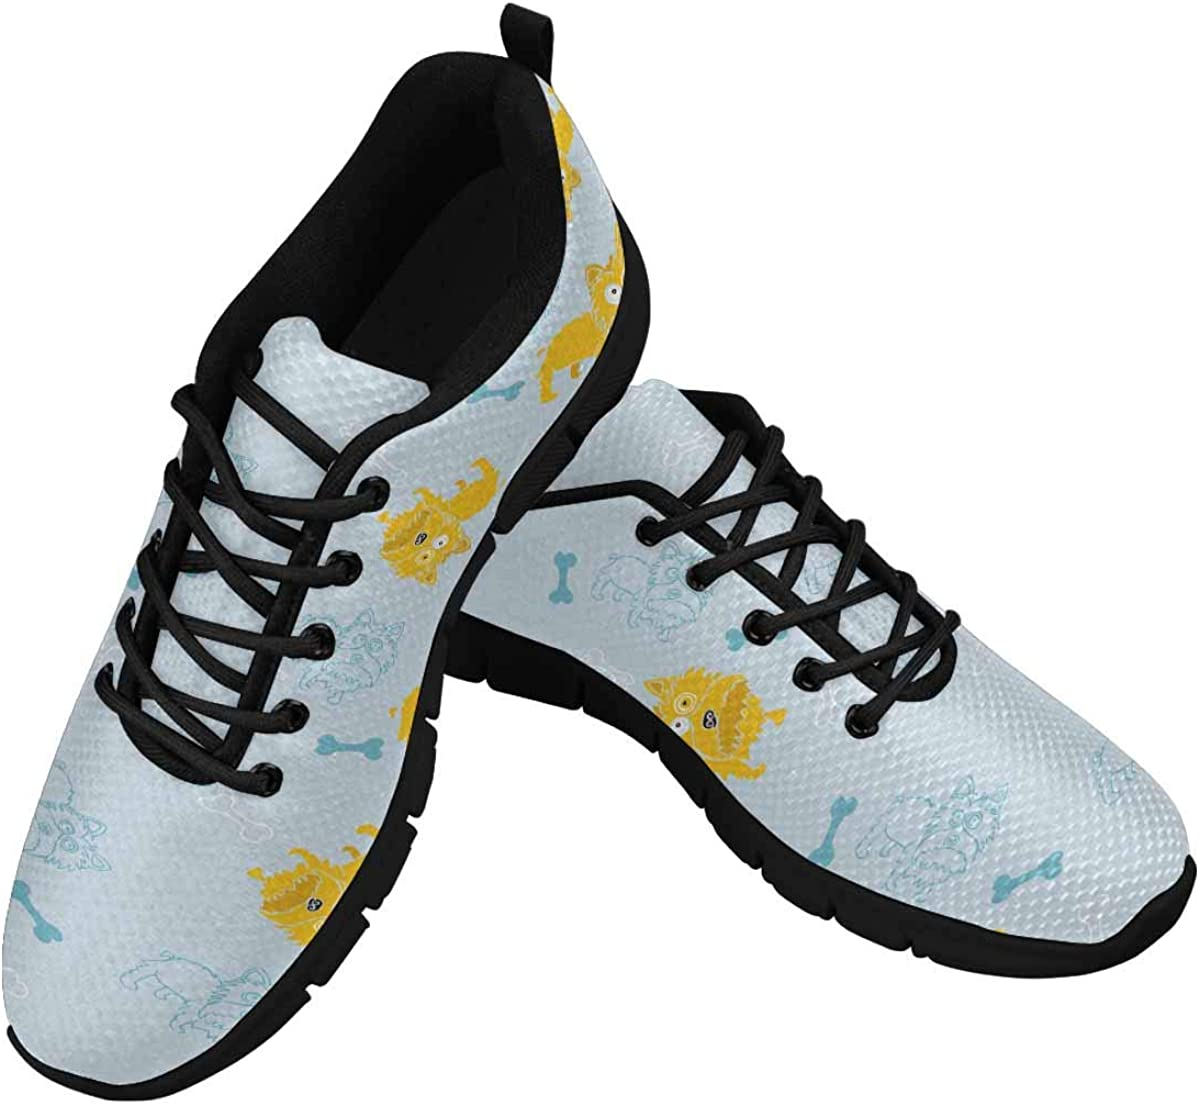 INTERESTPRINT Yorkshire Dog and Bones Lightweight Mesh Breathable Sneakers for Women